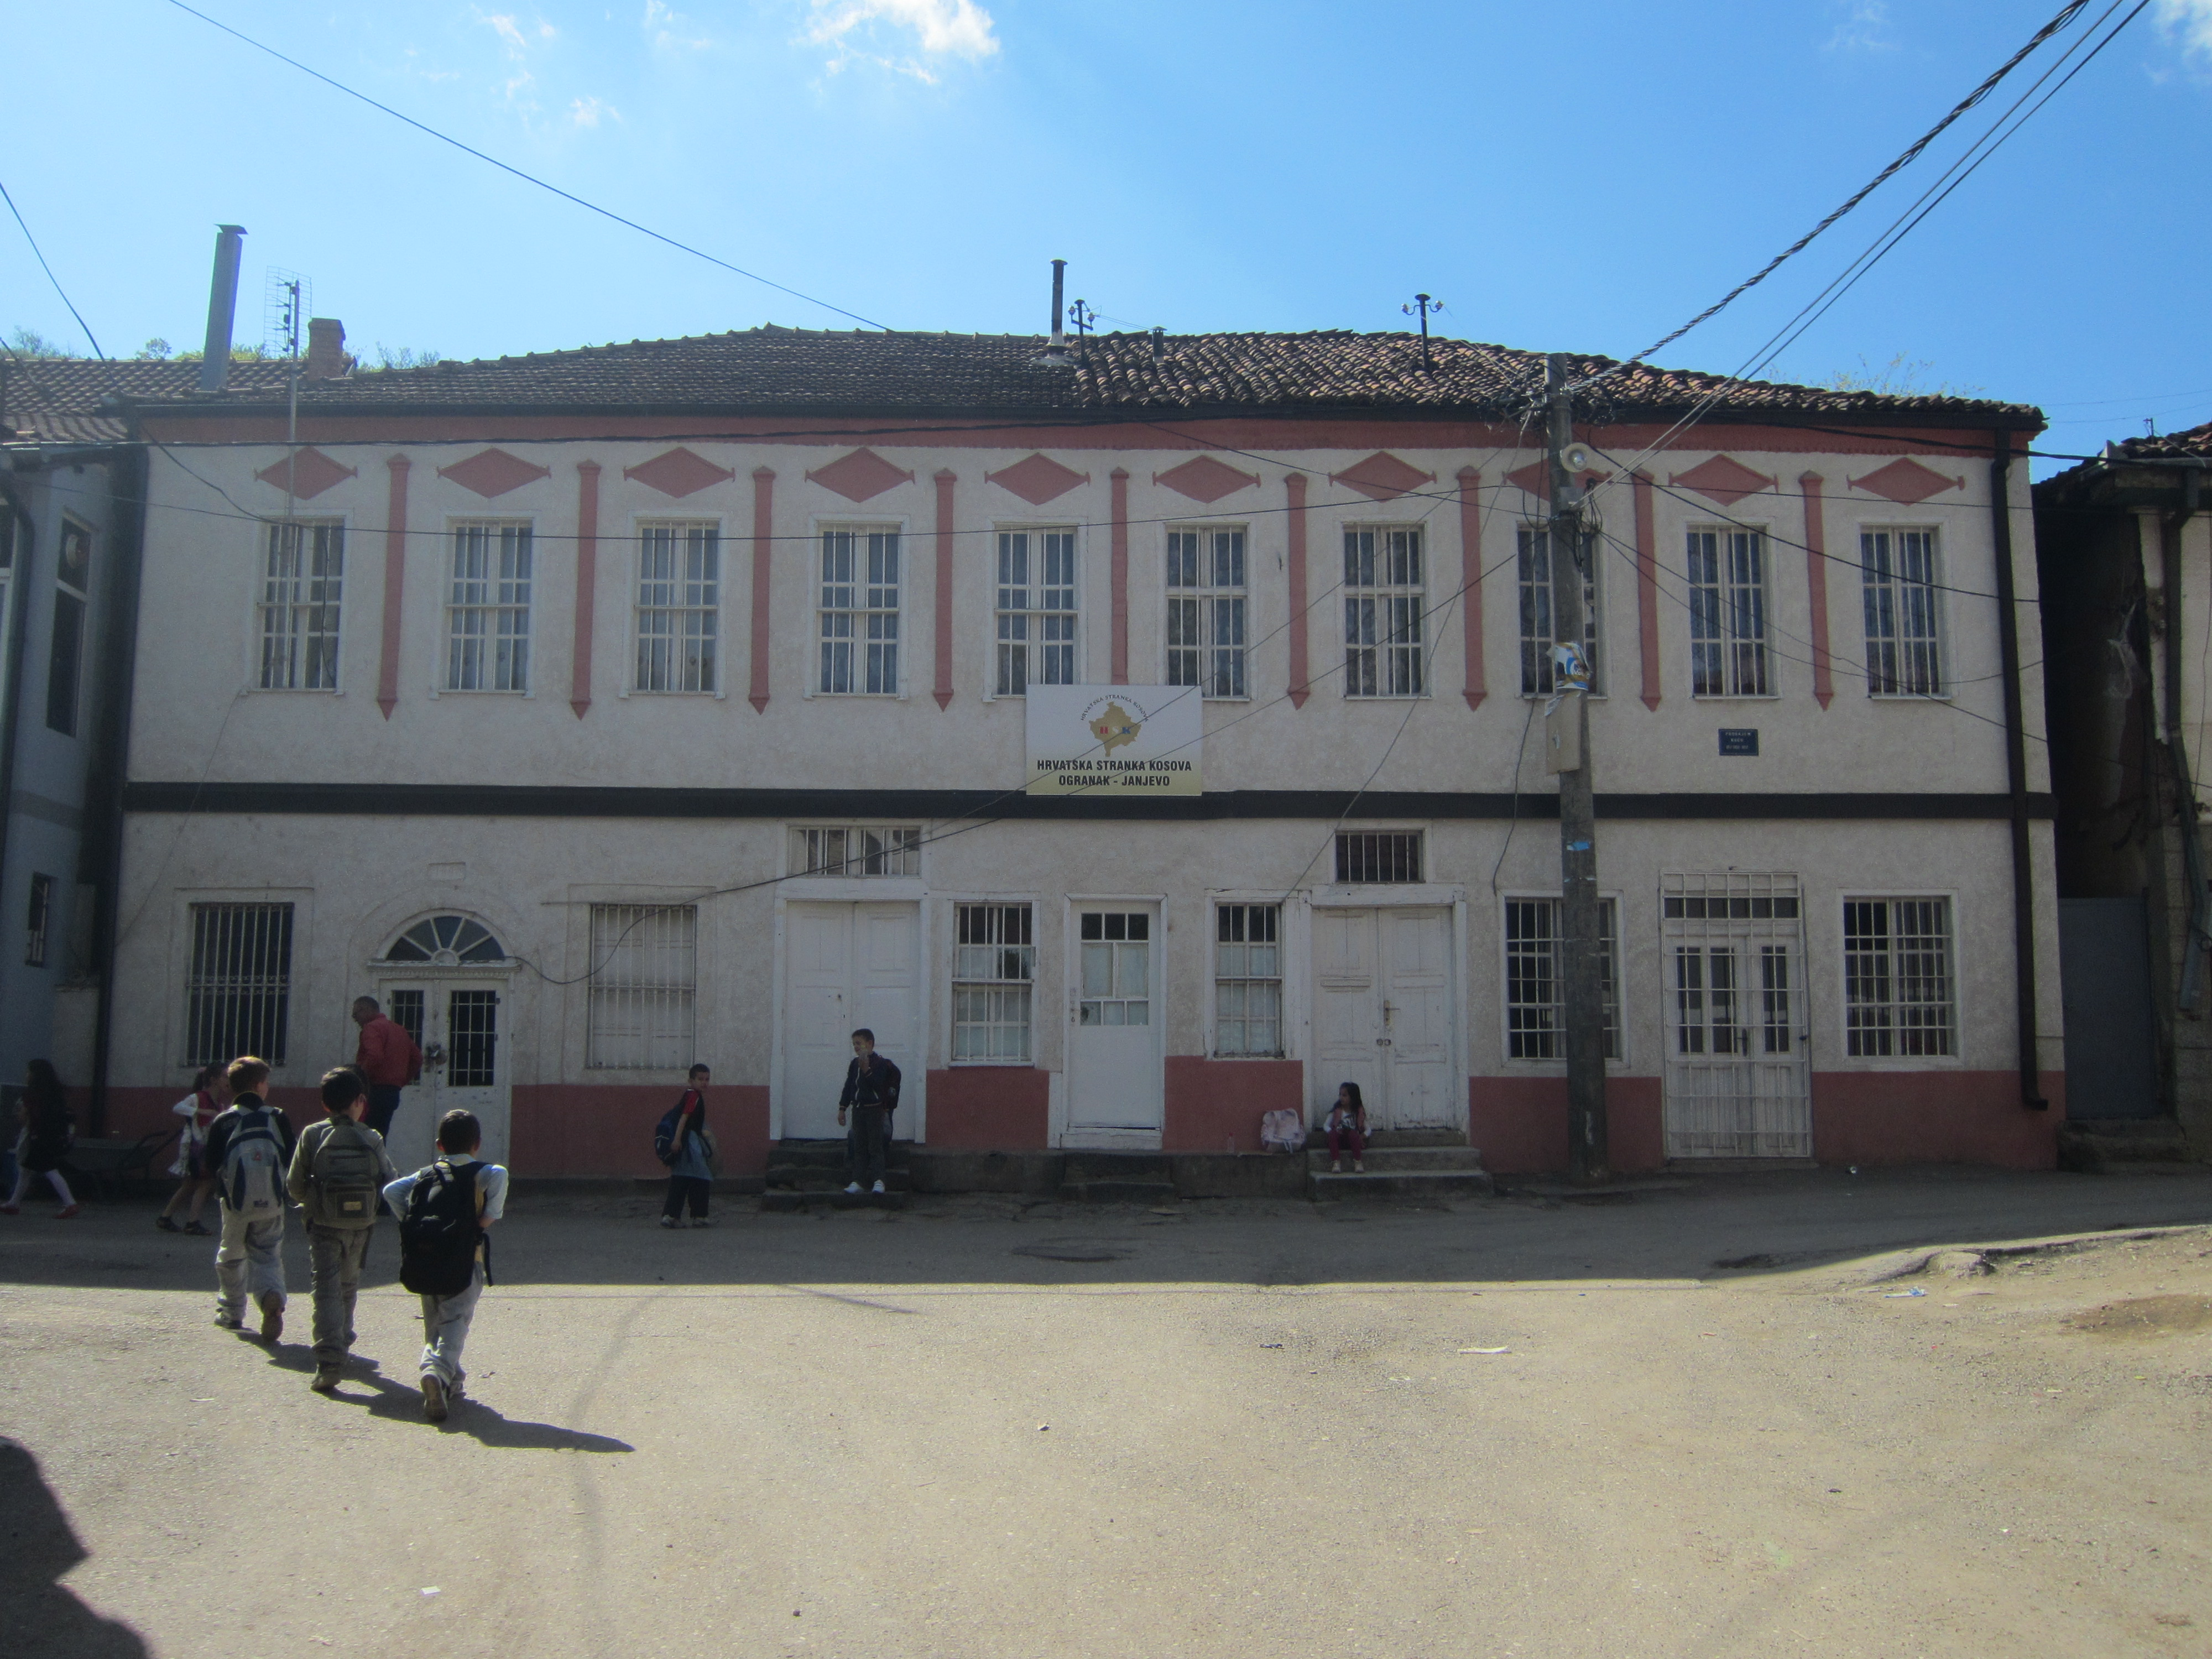 janjeva janjevo Post Office/Bank